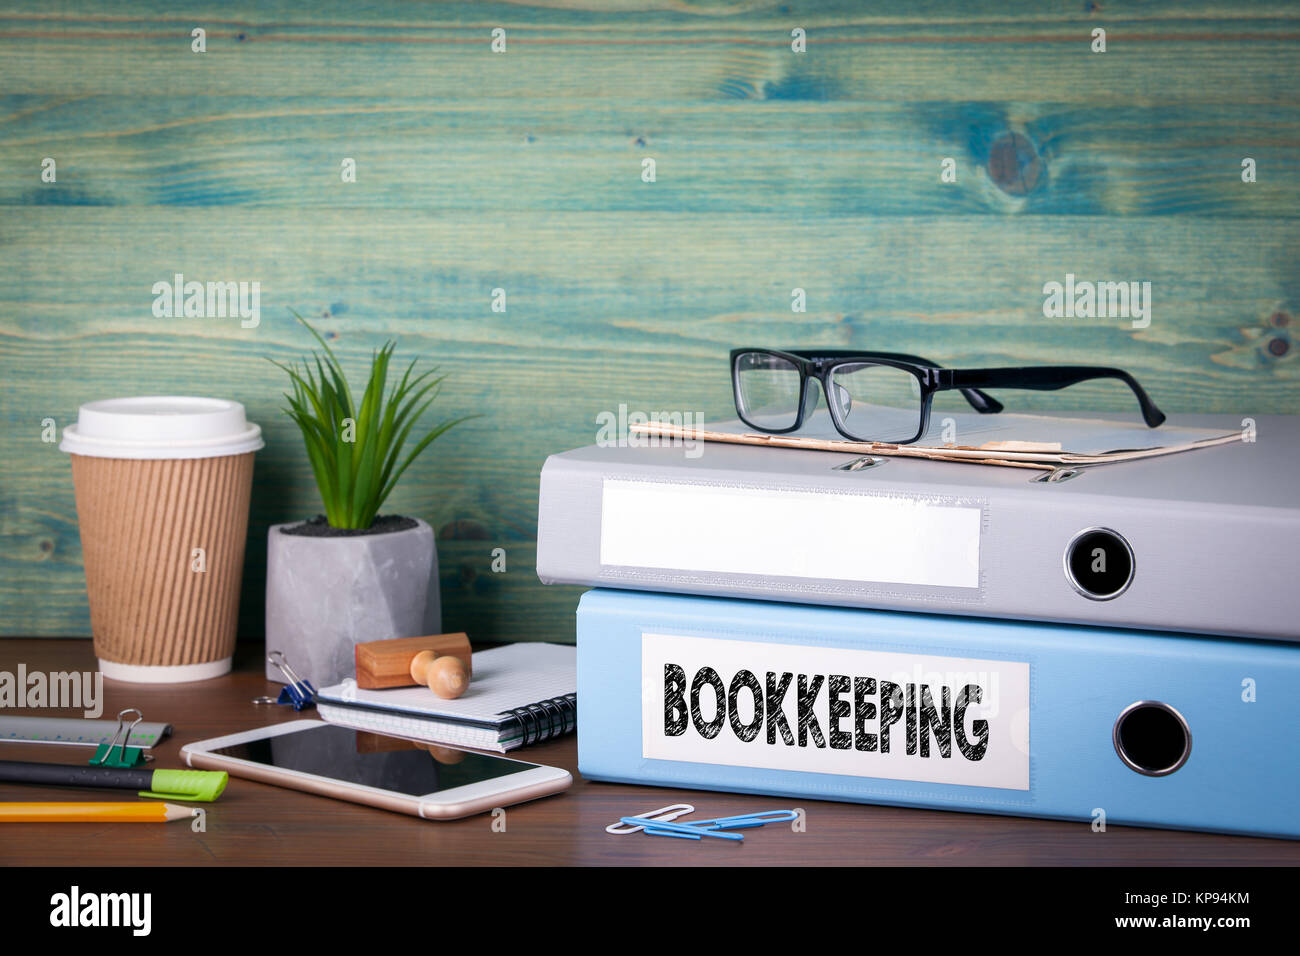 bookkeeping concept. Binders on desk in the office. Business background - Stock Image